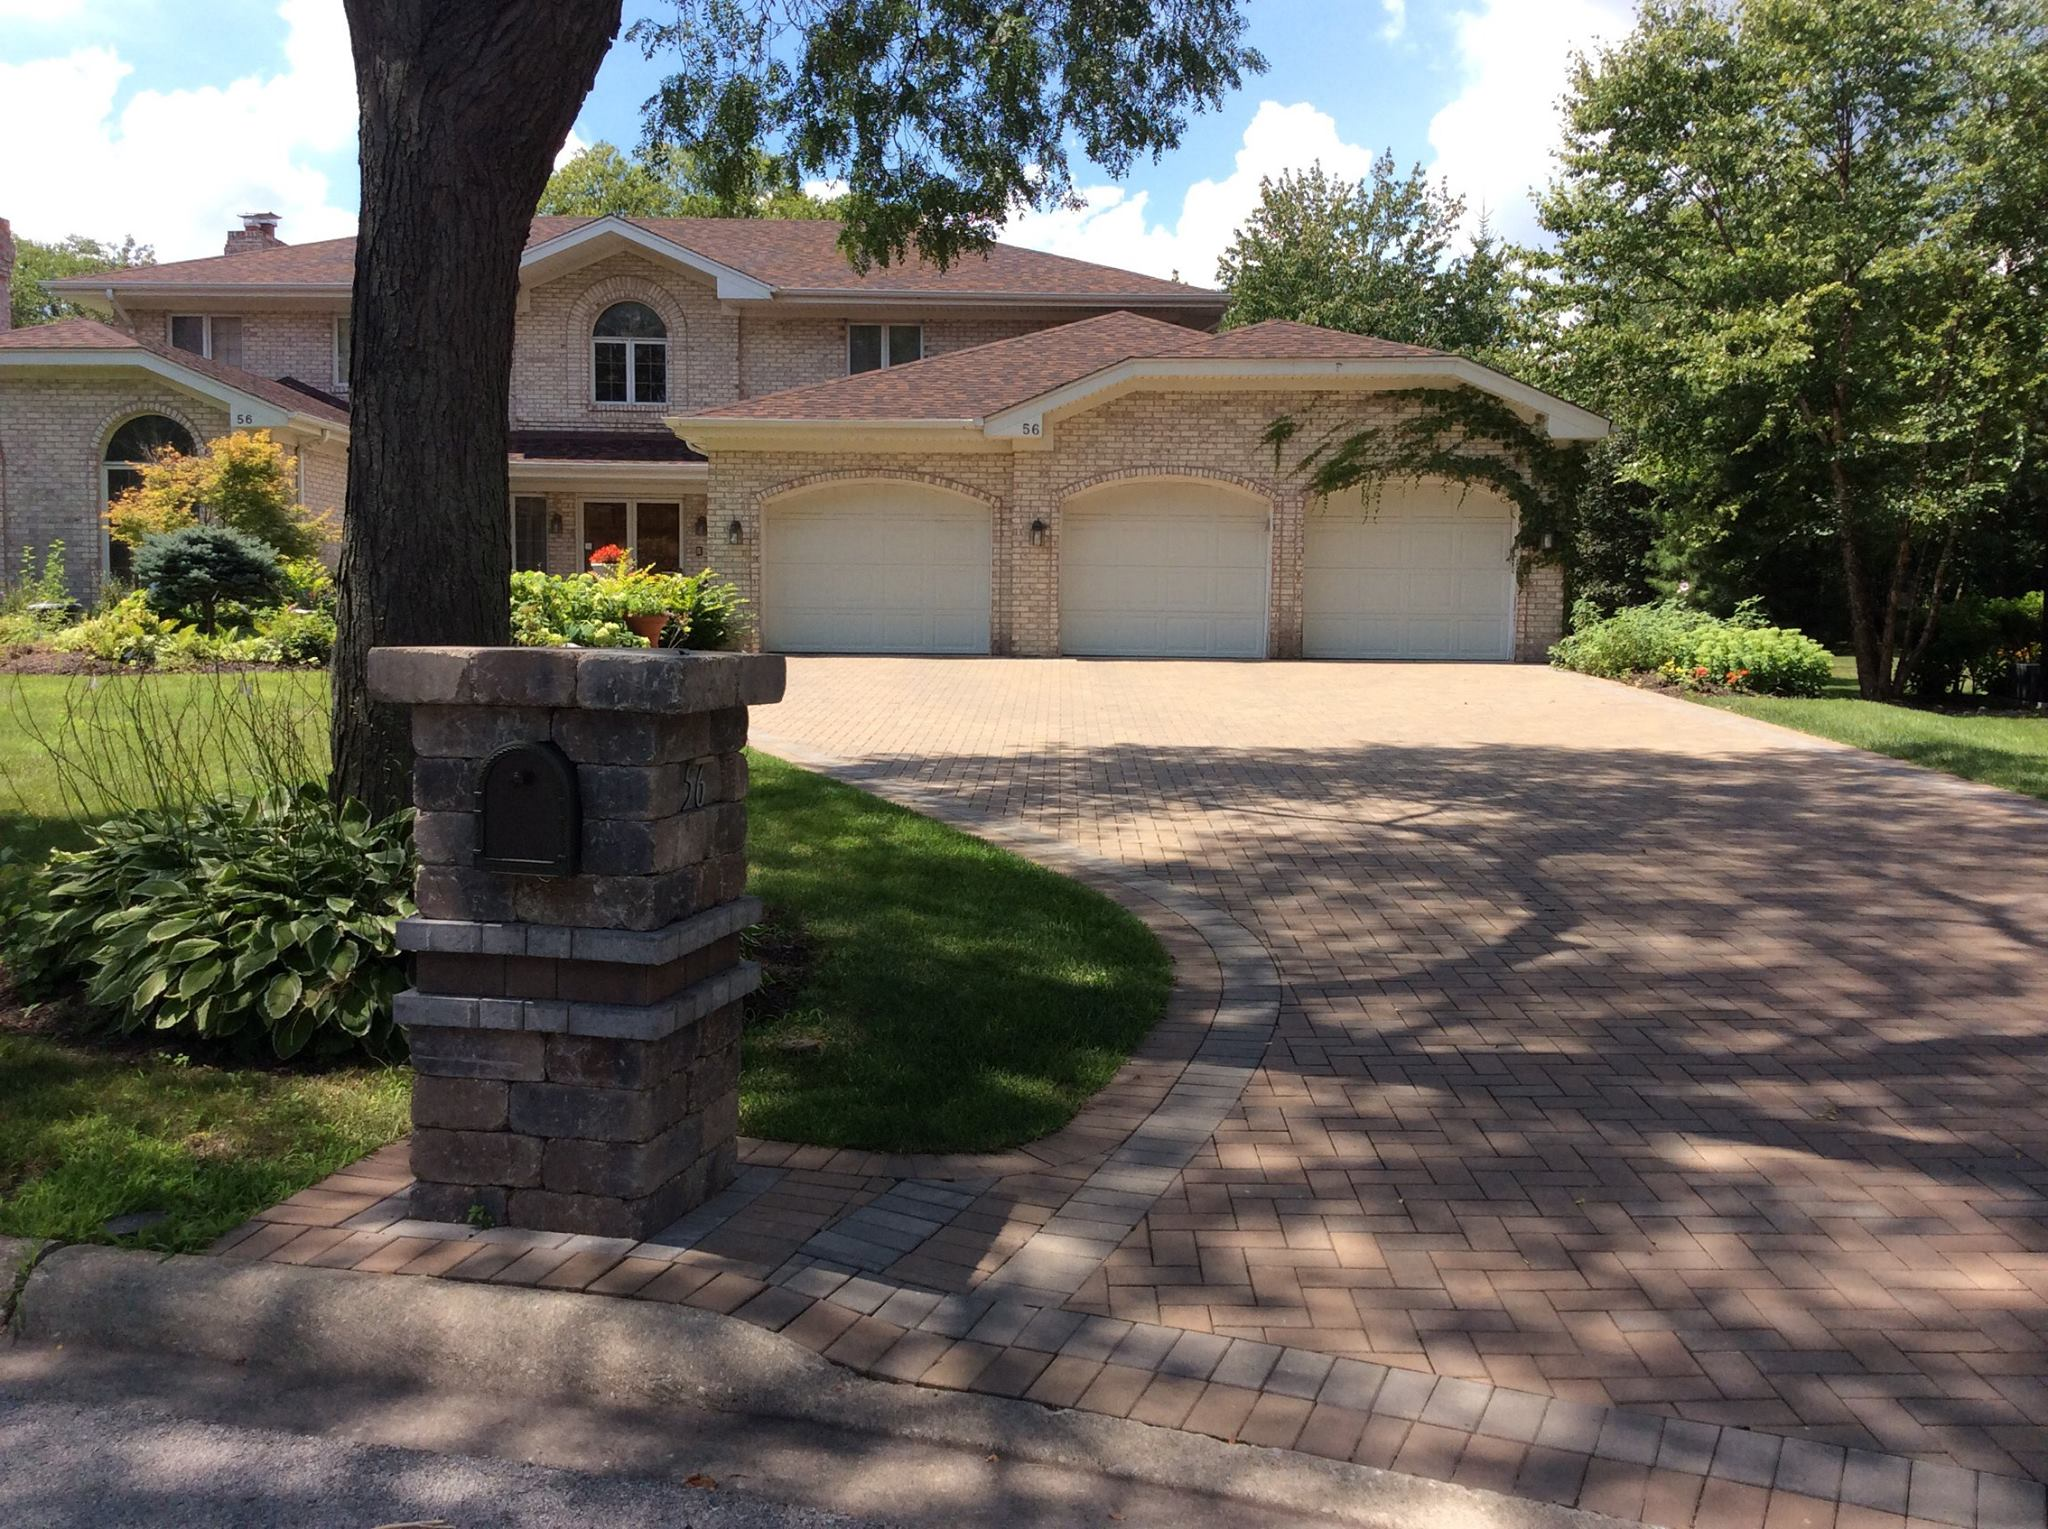 Brick driveway constructed by landscaping company in Plainfield, IL